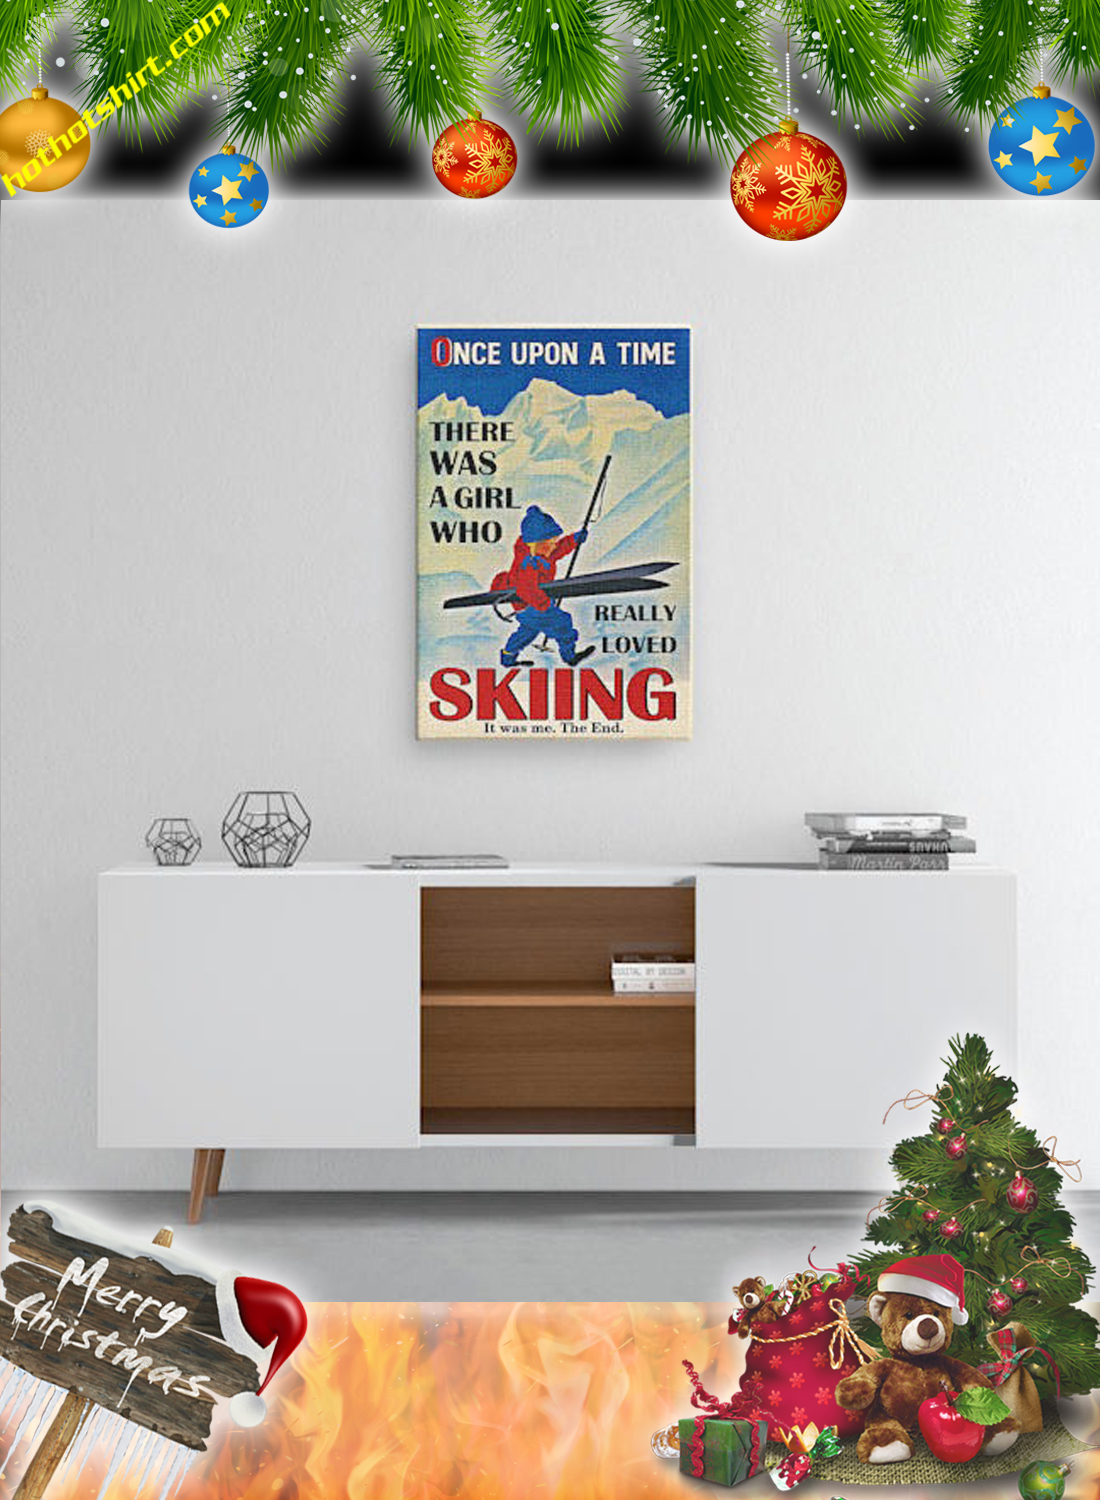 Once upon a time there was a girl who really loved skiing it was me the end canvas print and poster 2